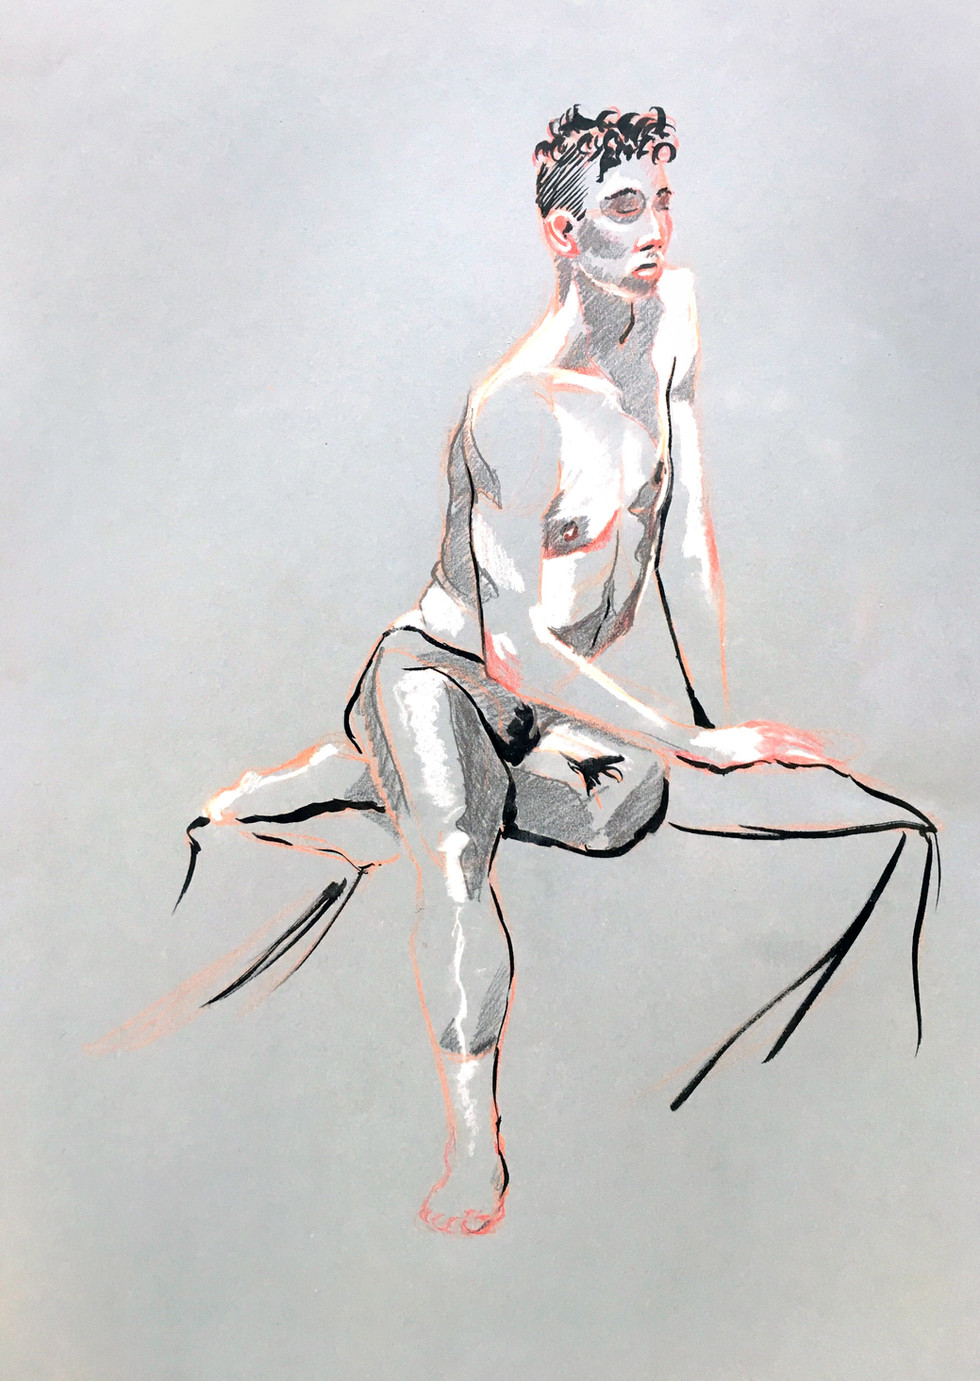 another life drawing